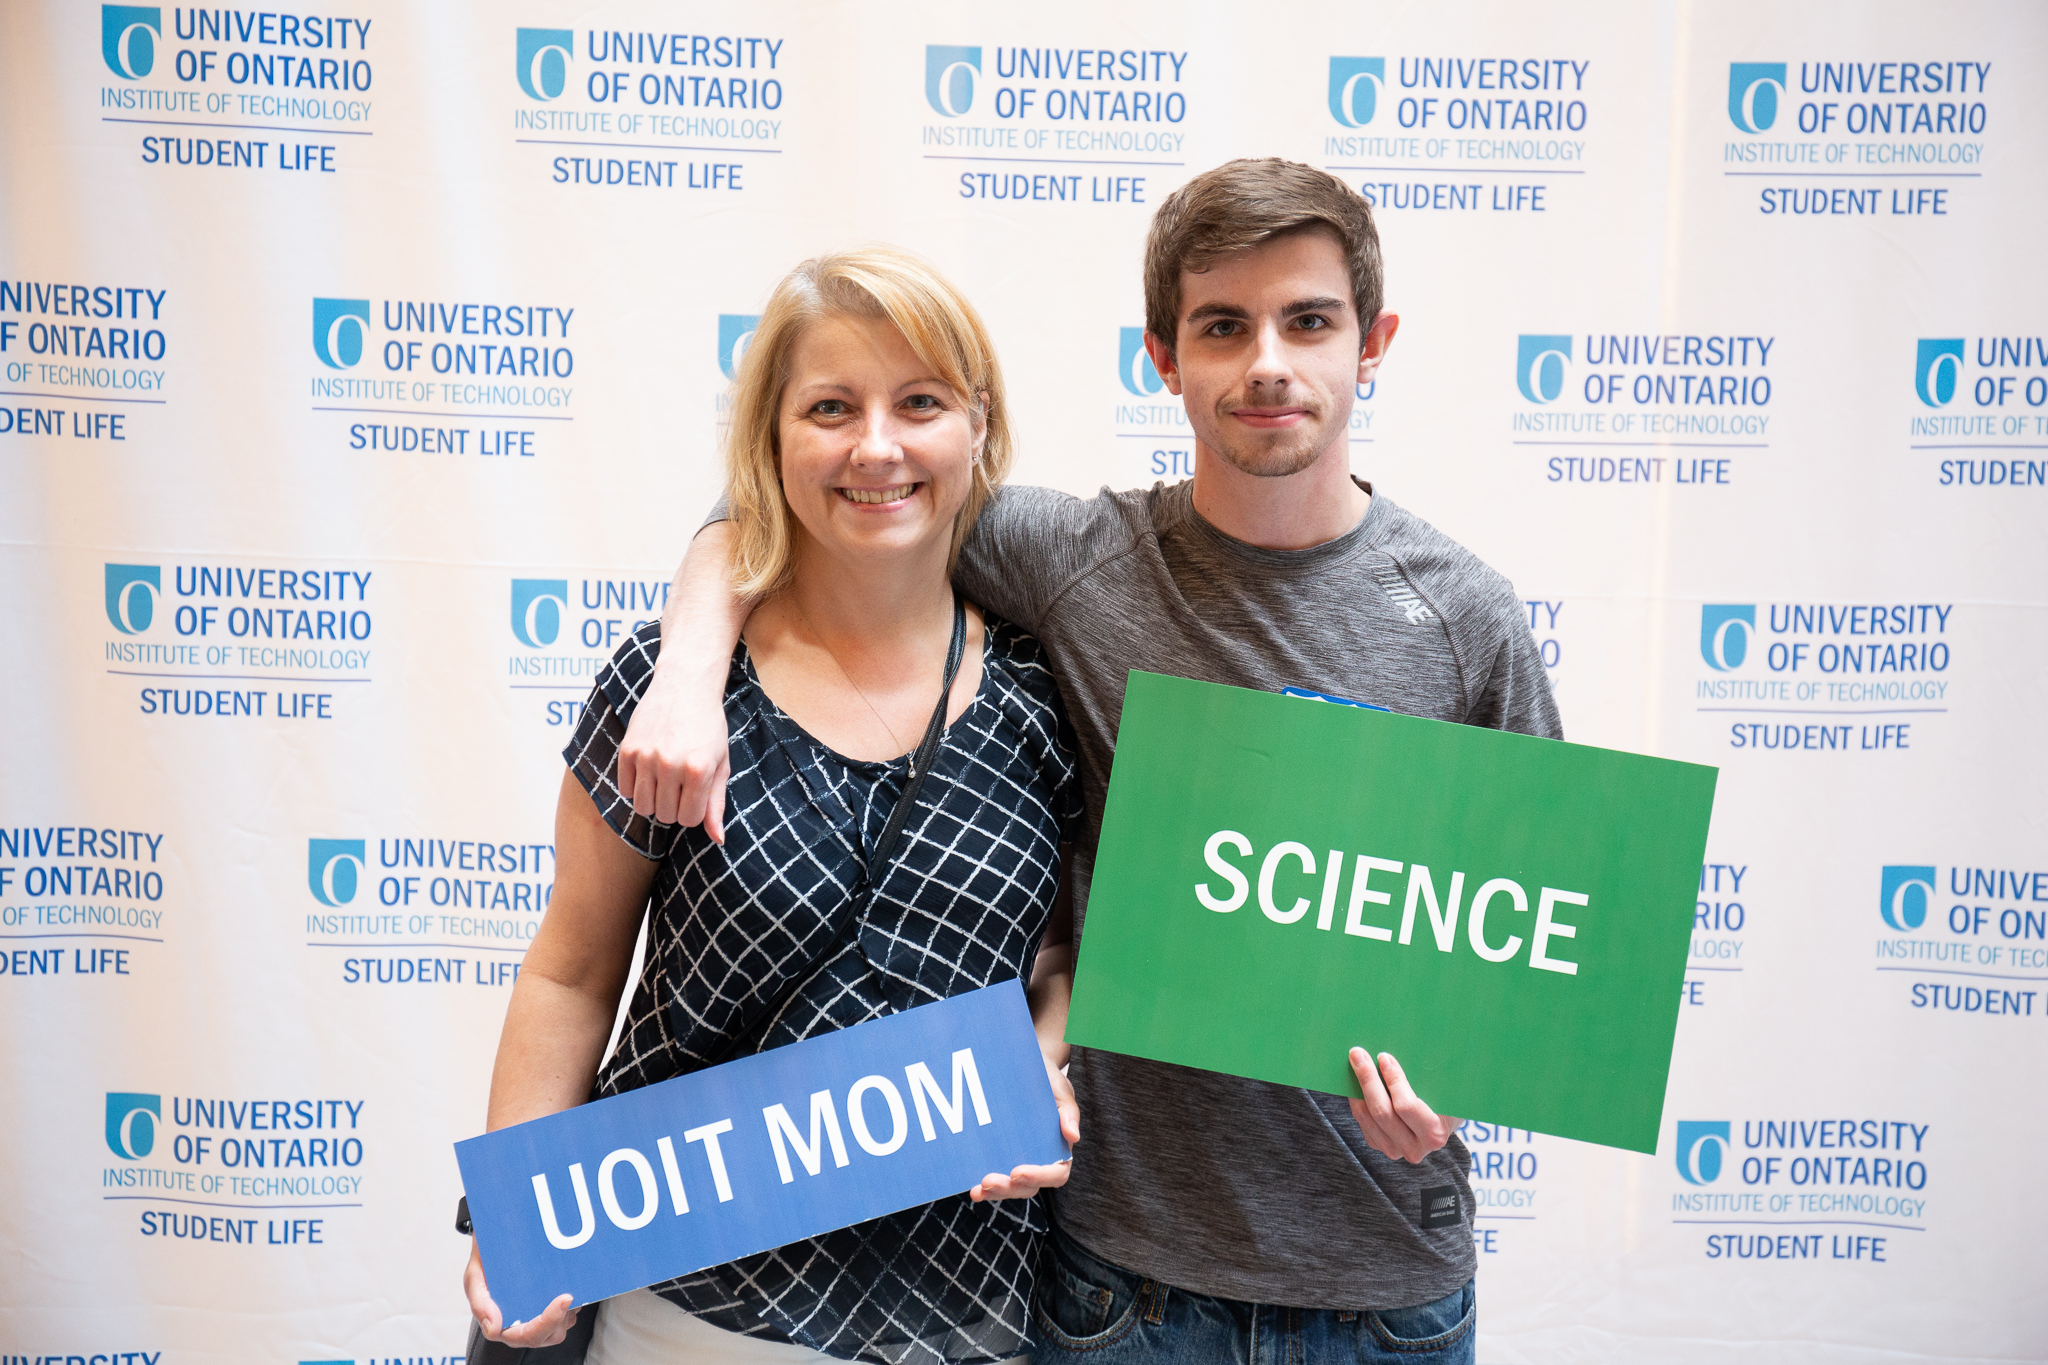 Student and mother holding science and uoit mom signs